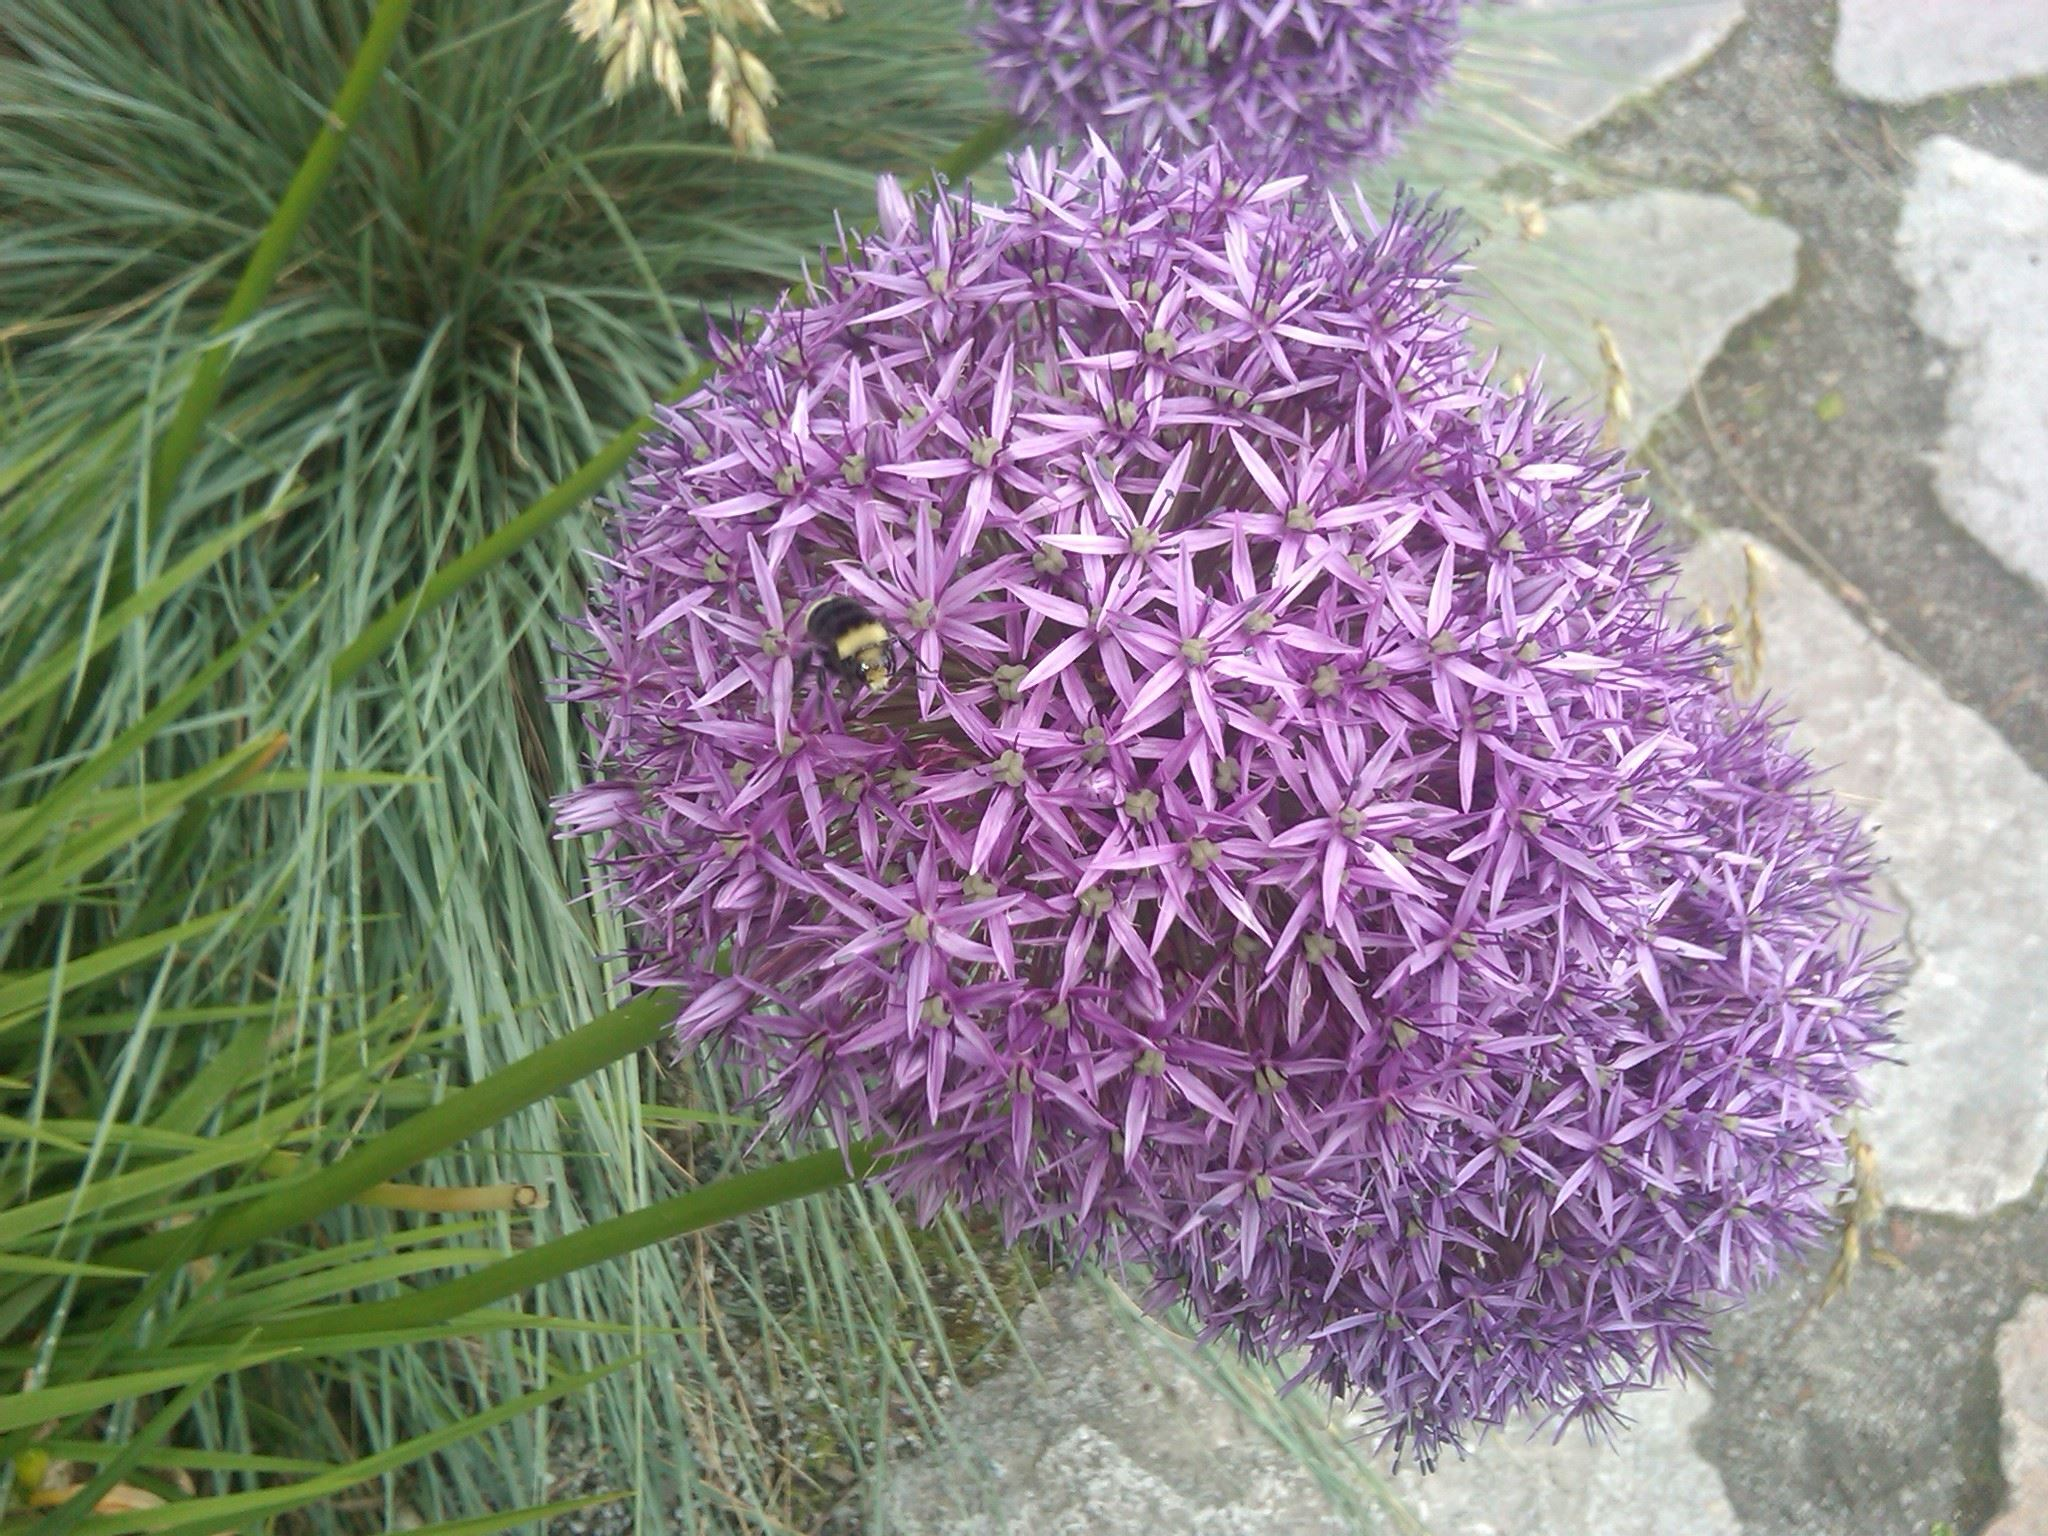 Bumblebee on Allium